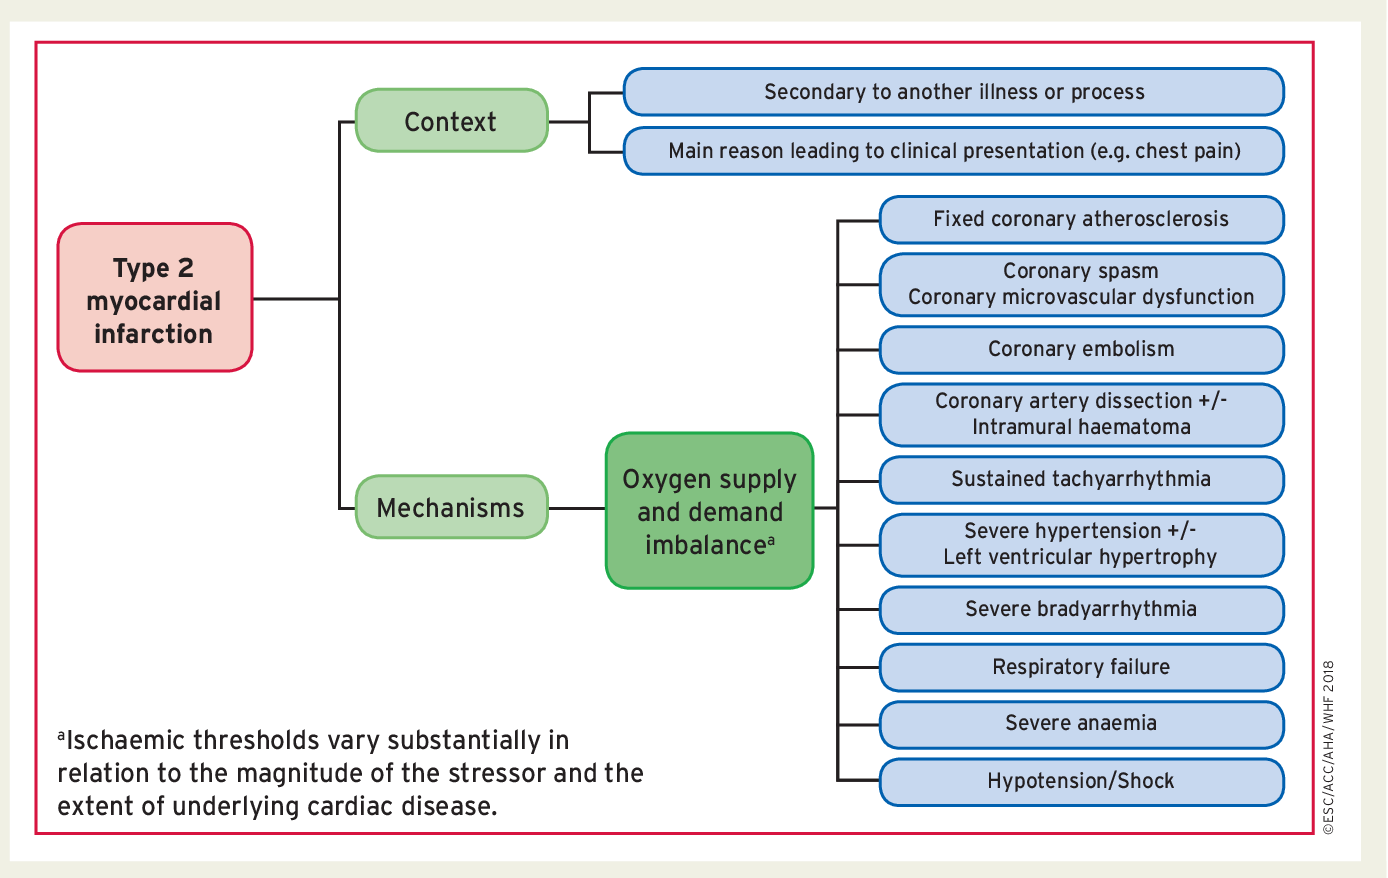 Figure 4 from Fourth universal definition of myocardial infarction